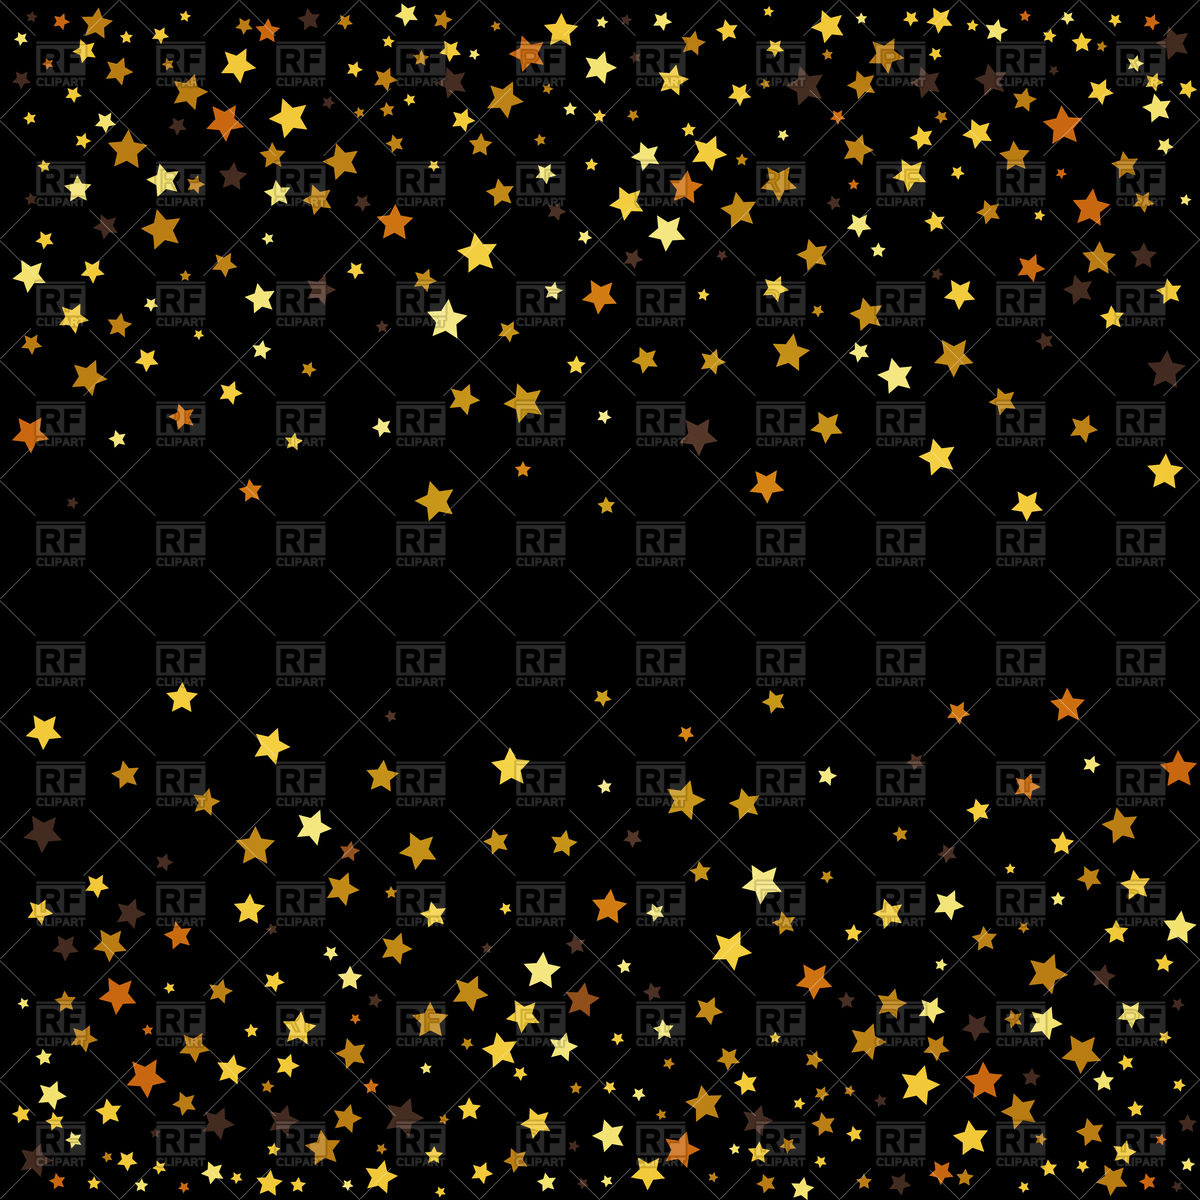 Gold star on black clipart.